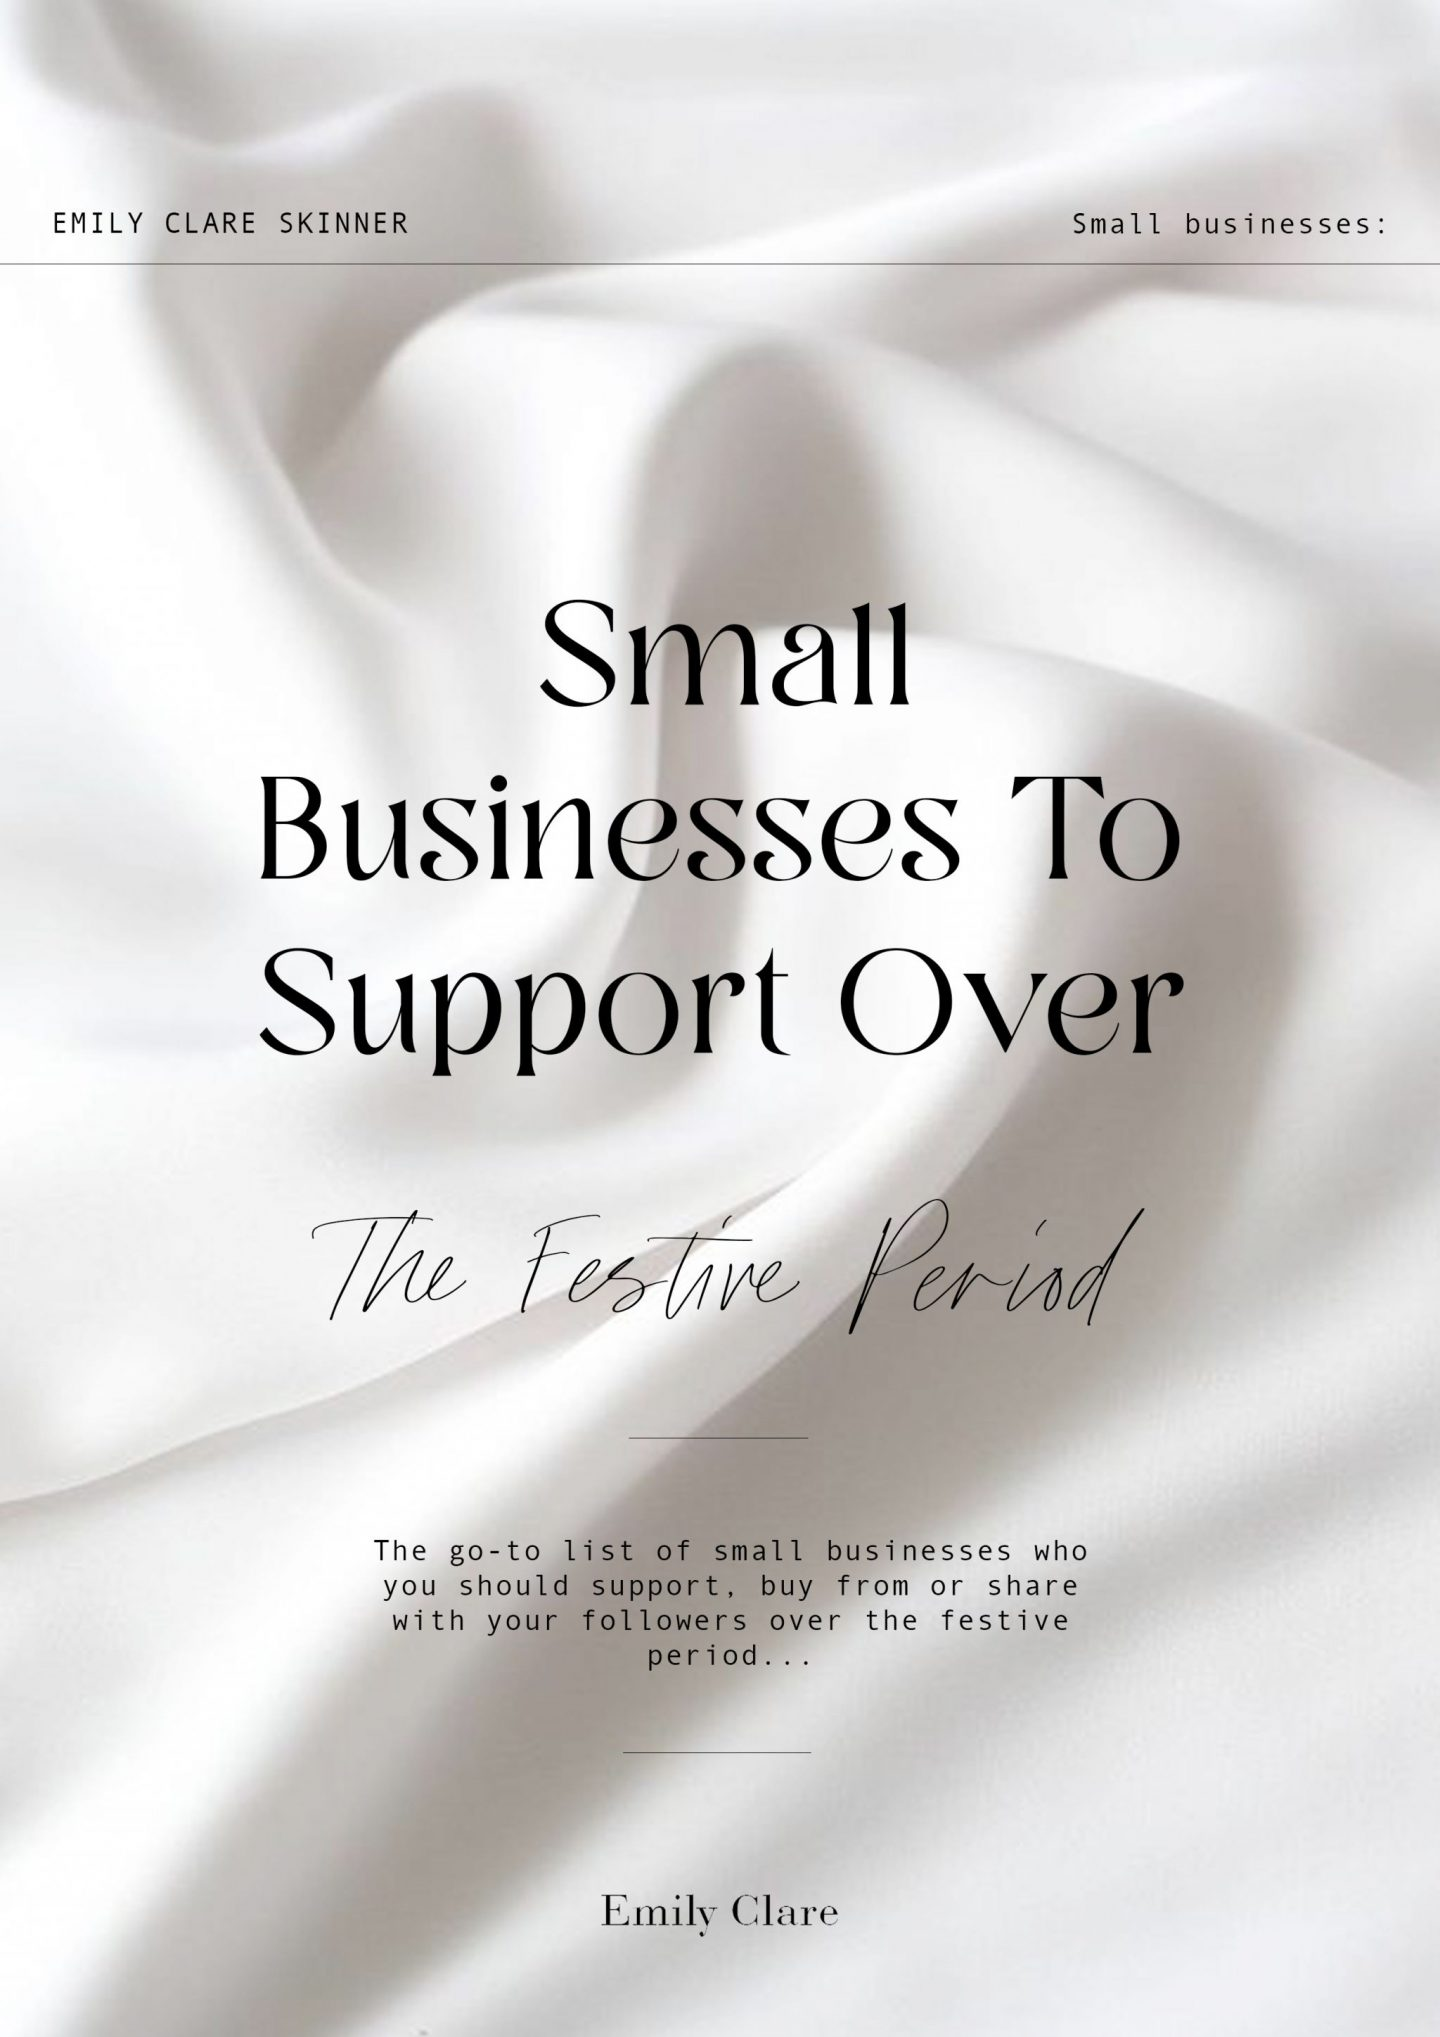 The go-to list of small businesses who you should support, buy from or share with your followers over the festive period...